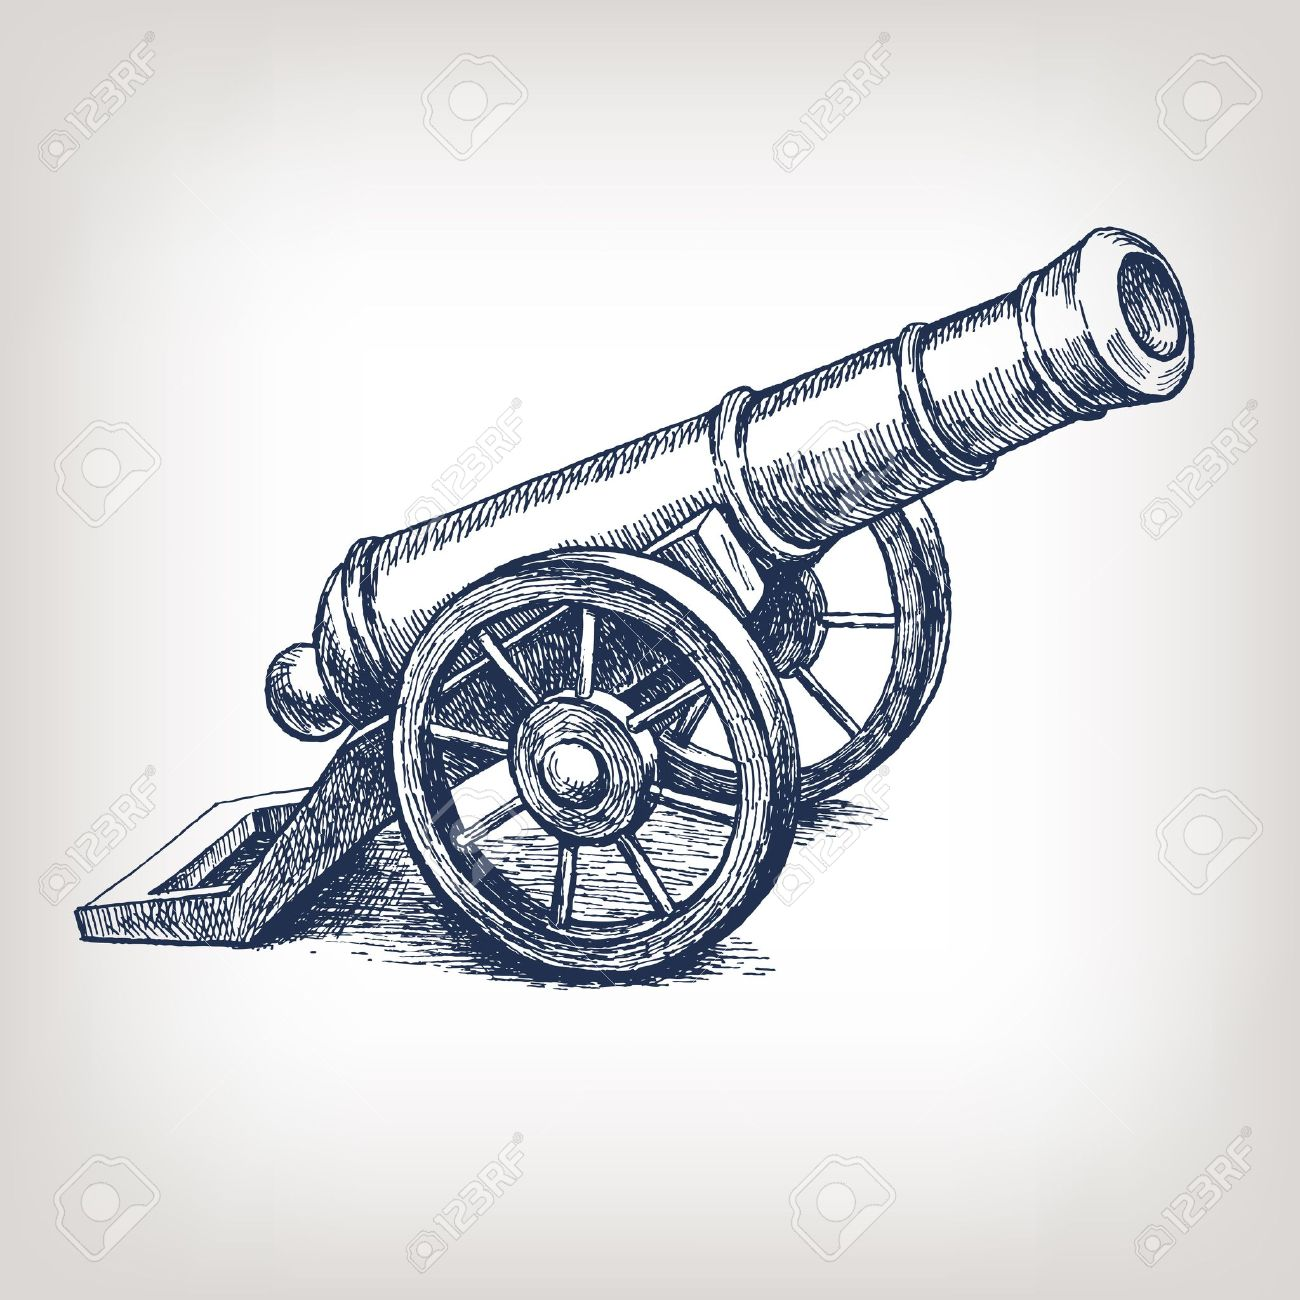 Old cannon clipart.